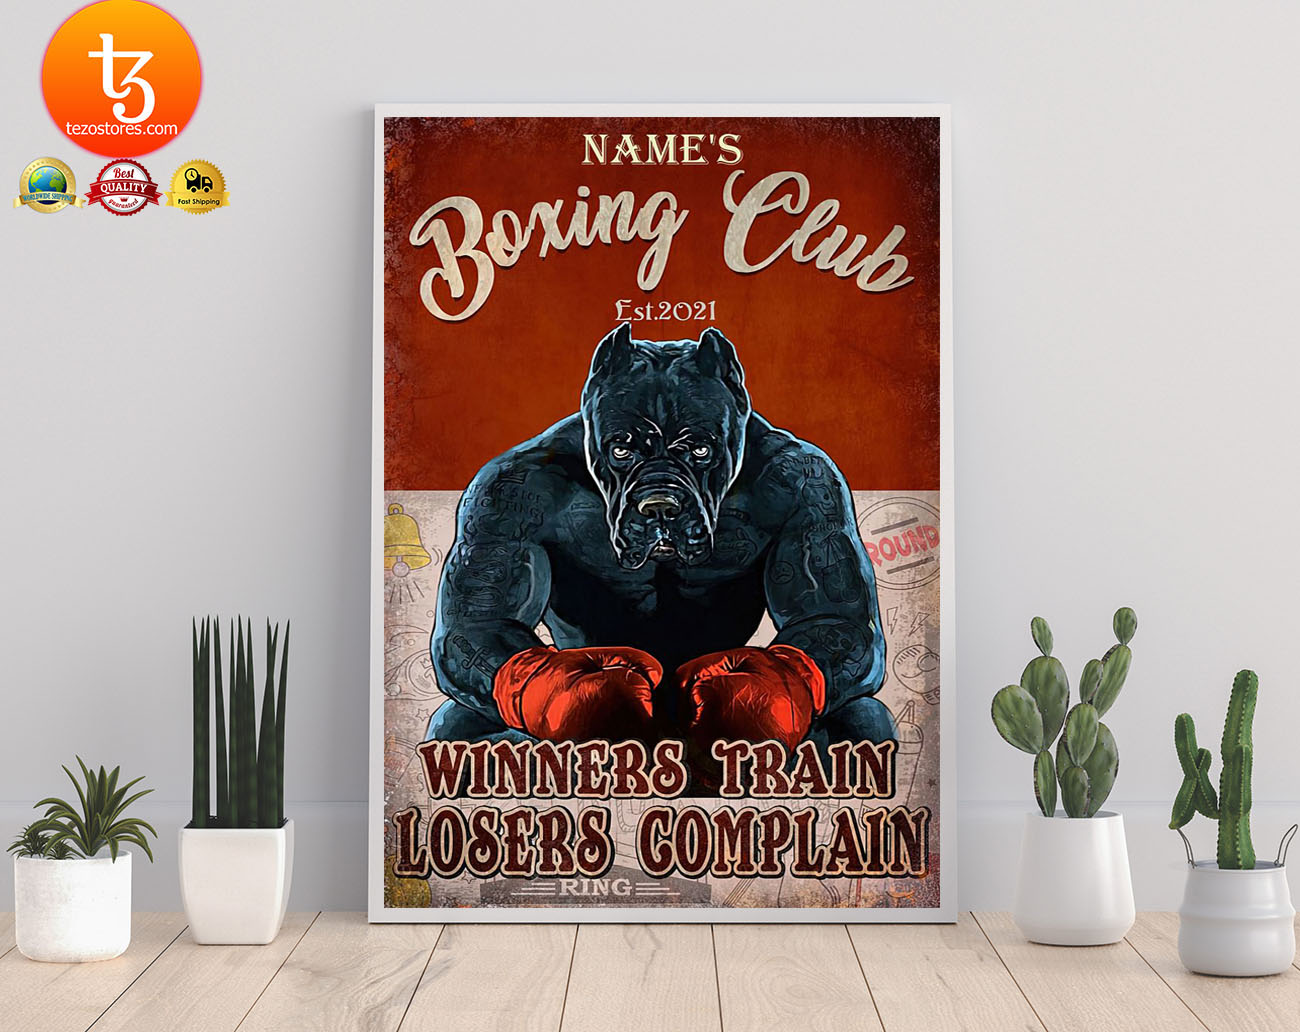 Boxing club winners train losers complain poster 3